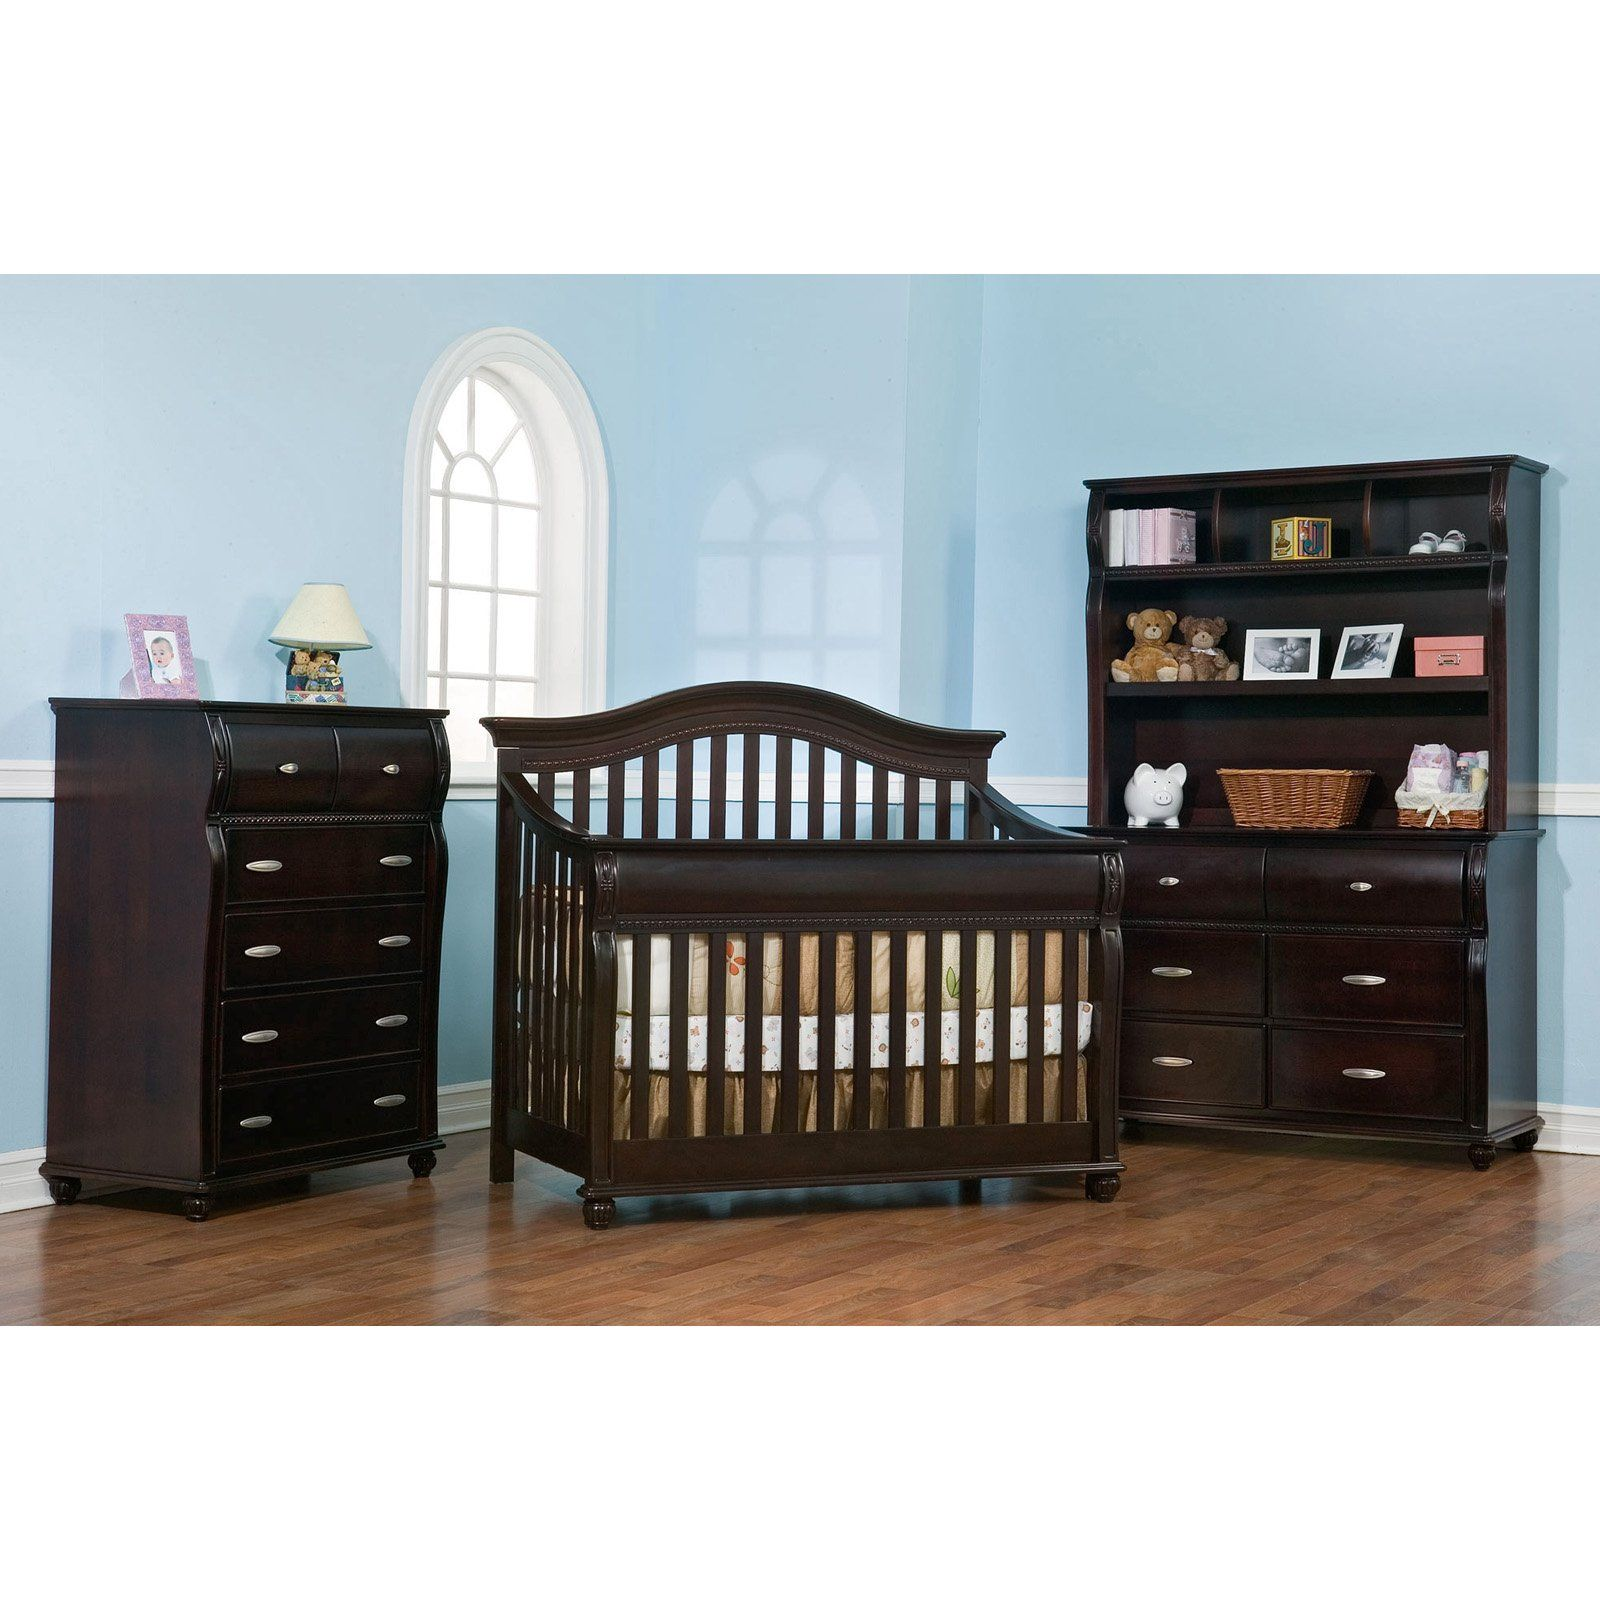 Simmons Juvenile Vancouver 4 In 1 Convertible Crib Collection 524 98